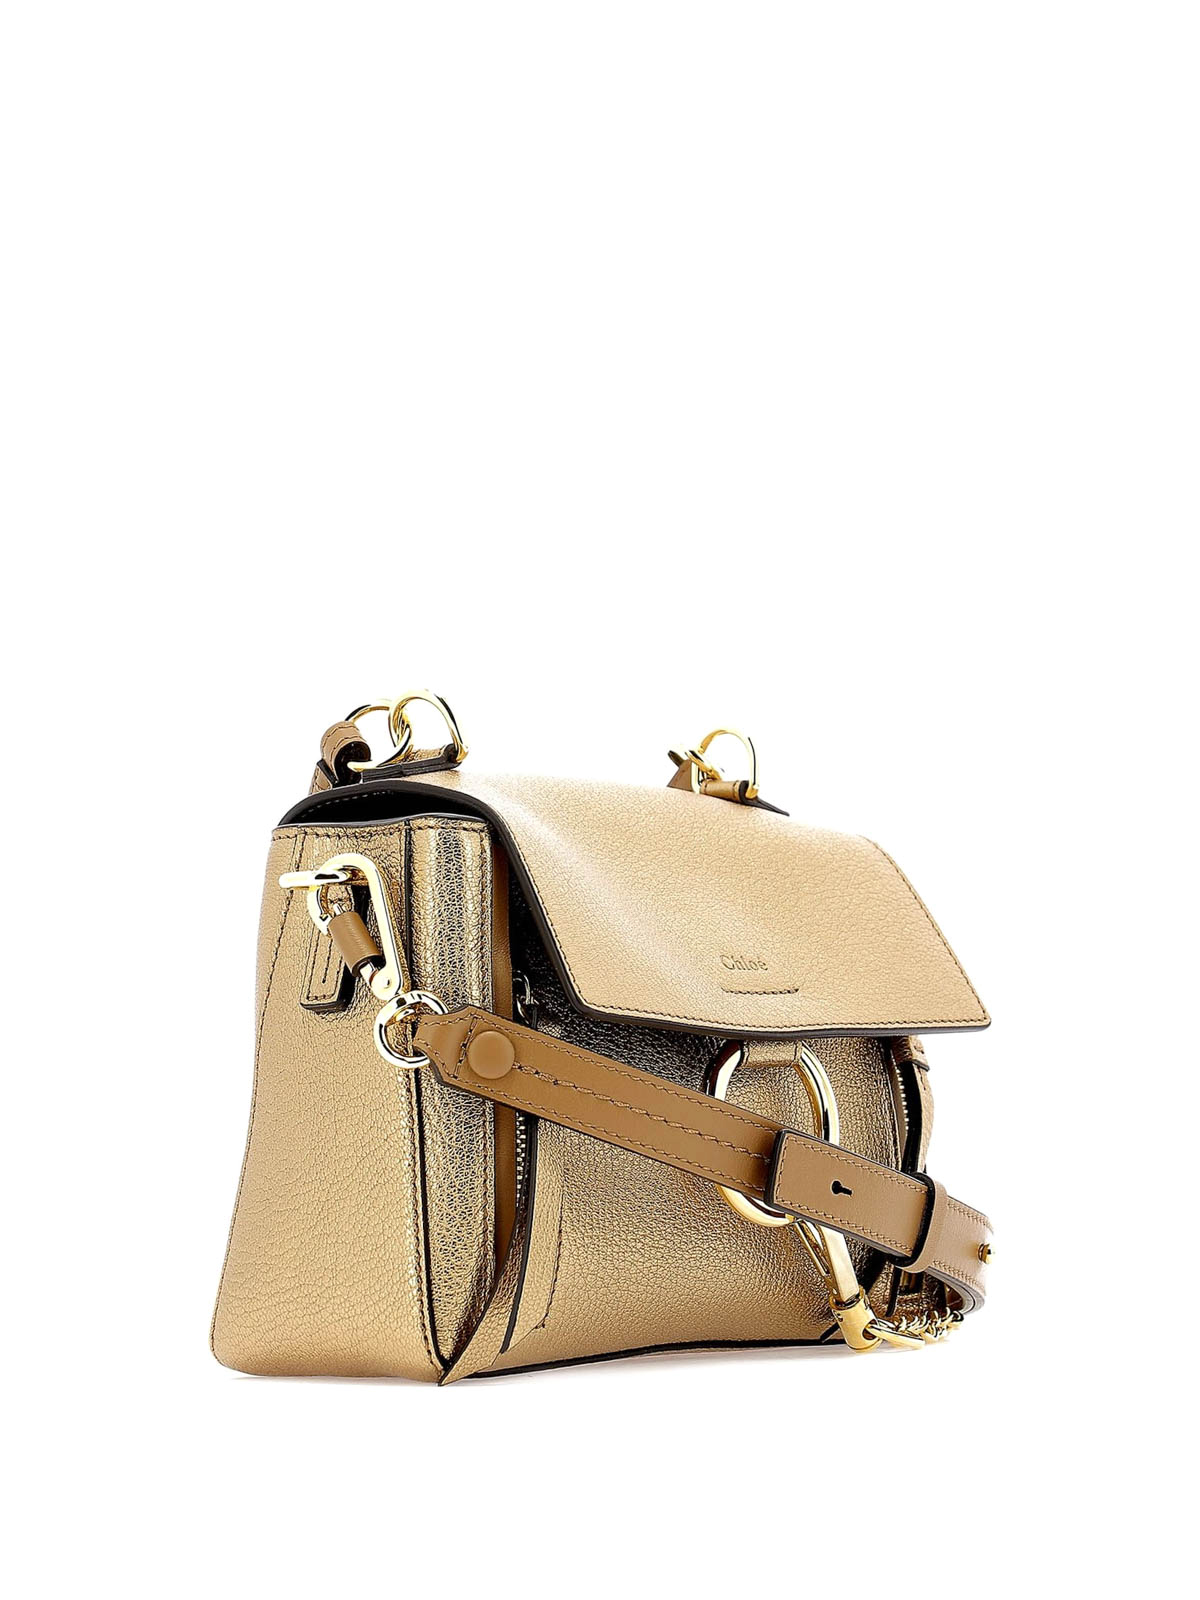 c283117d475b ... Shoulder Bag Happy Green 187332. CHLOE MINI FAYE DAY DOUBLE CARRY BAG  IN BLUSH NUDE SMOOTH   SUEDE CALFSKIN Chloe  39  - Faye Day Mini metallic  leather ...